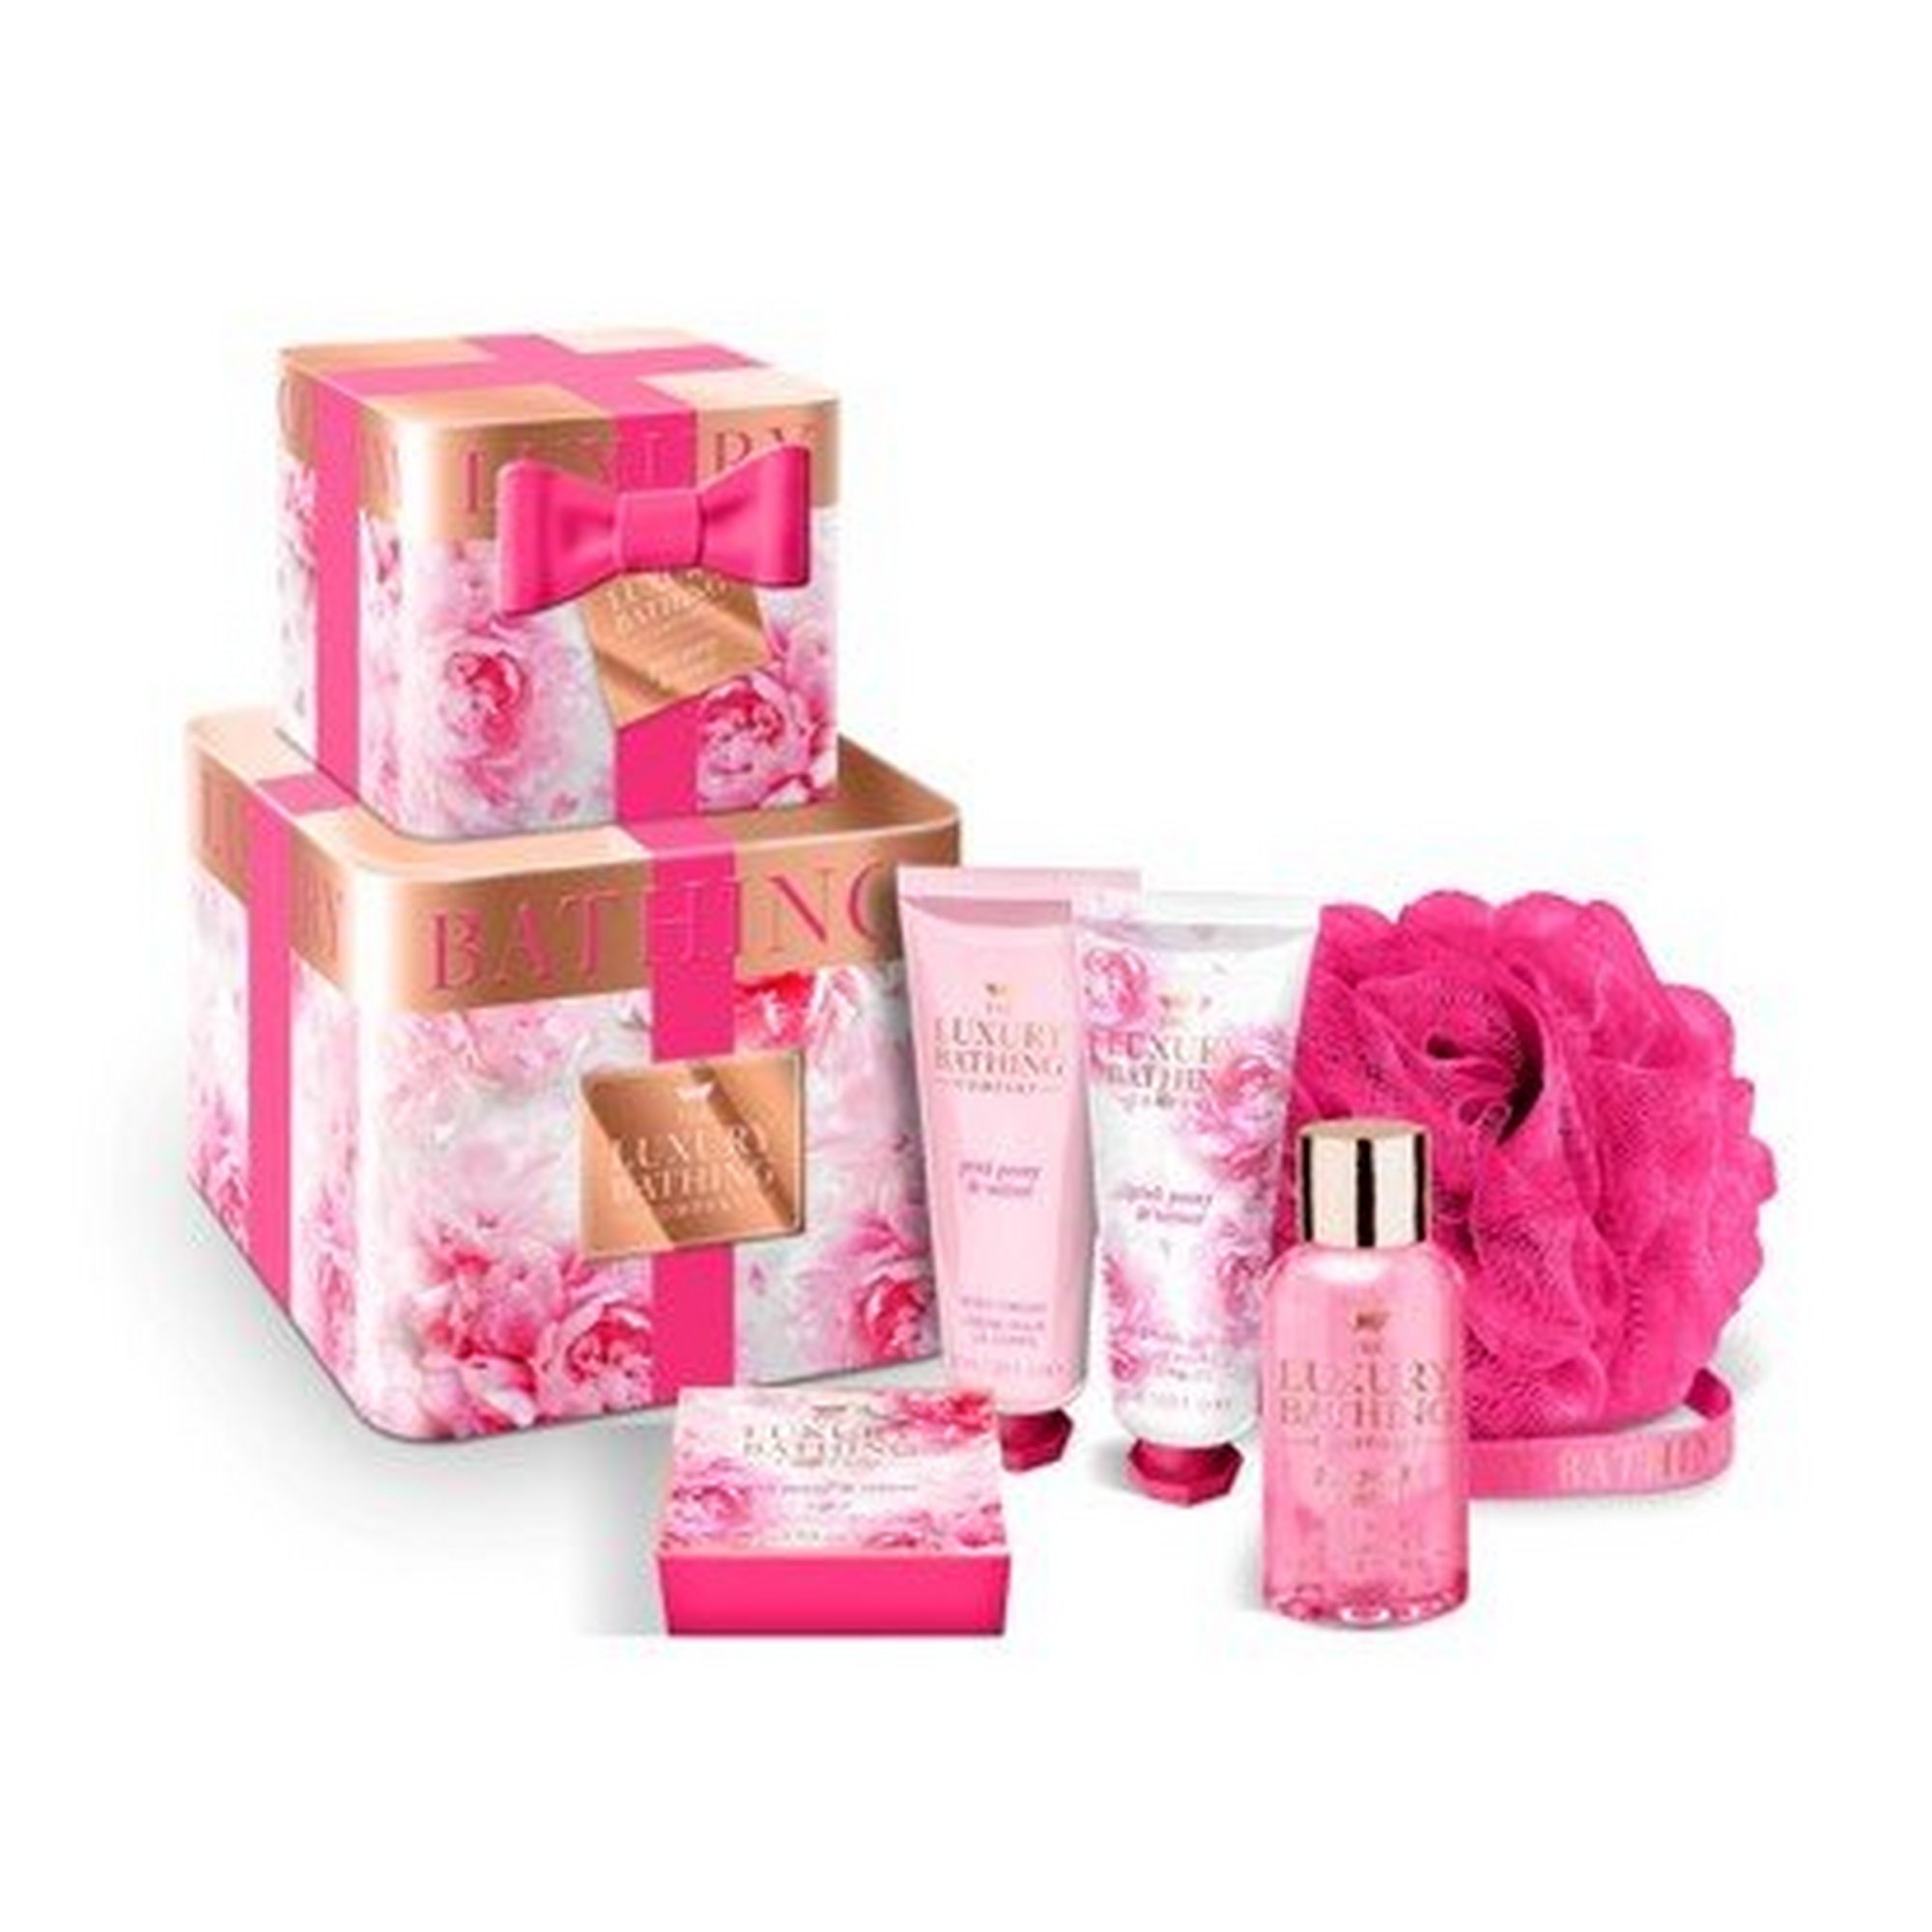 Image of Grace Cole Luxury Bathing Collection Bathing Blossoms Gift Set